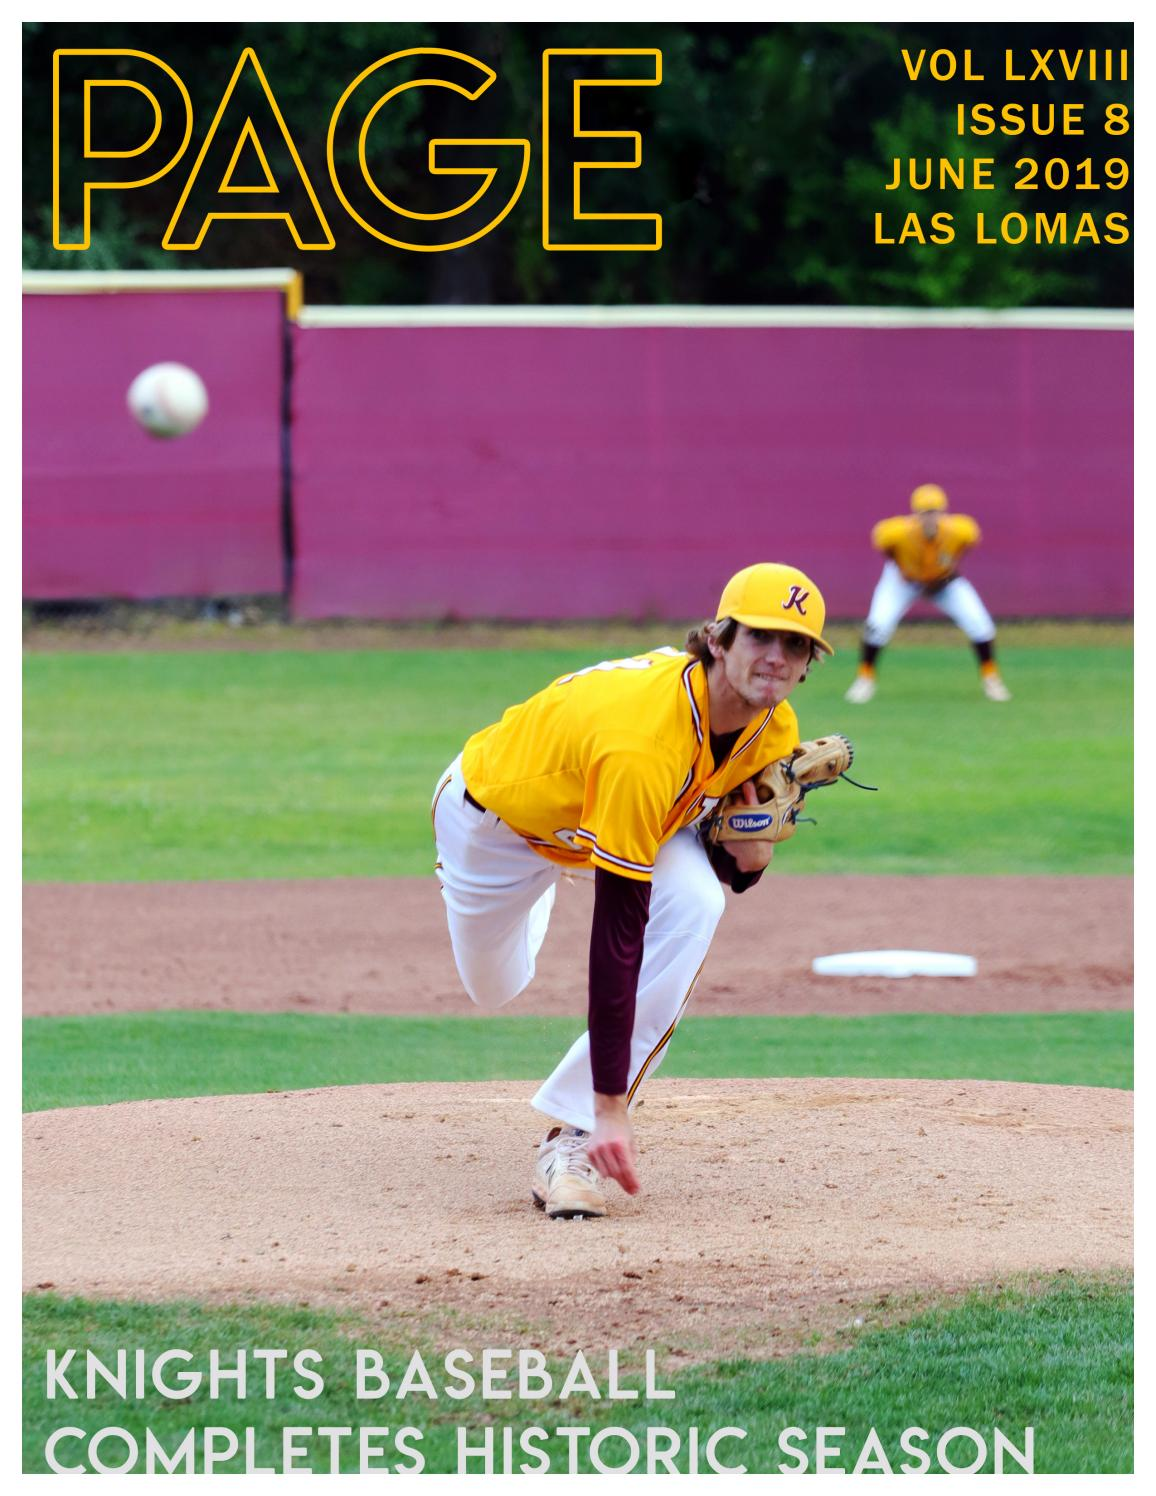 Volume 68 Issue 8 By Las Lomas Page Issuu